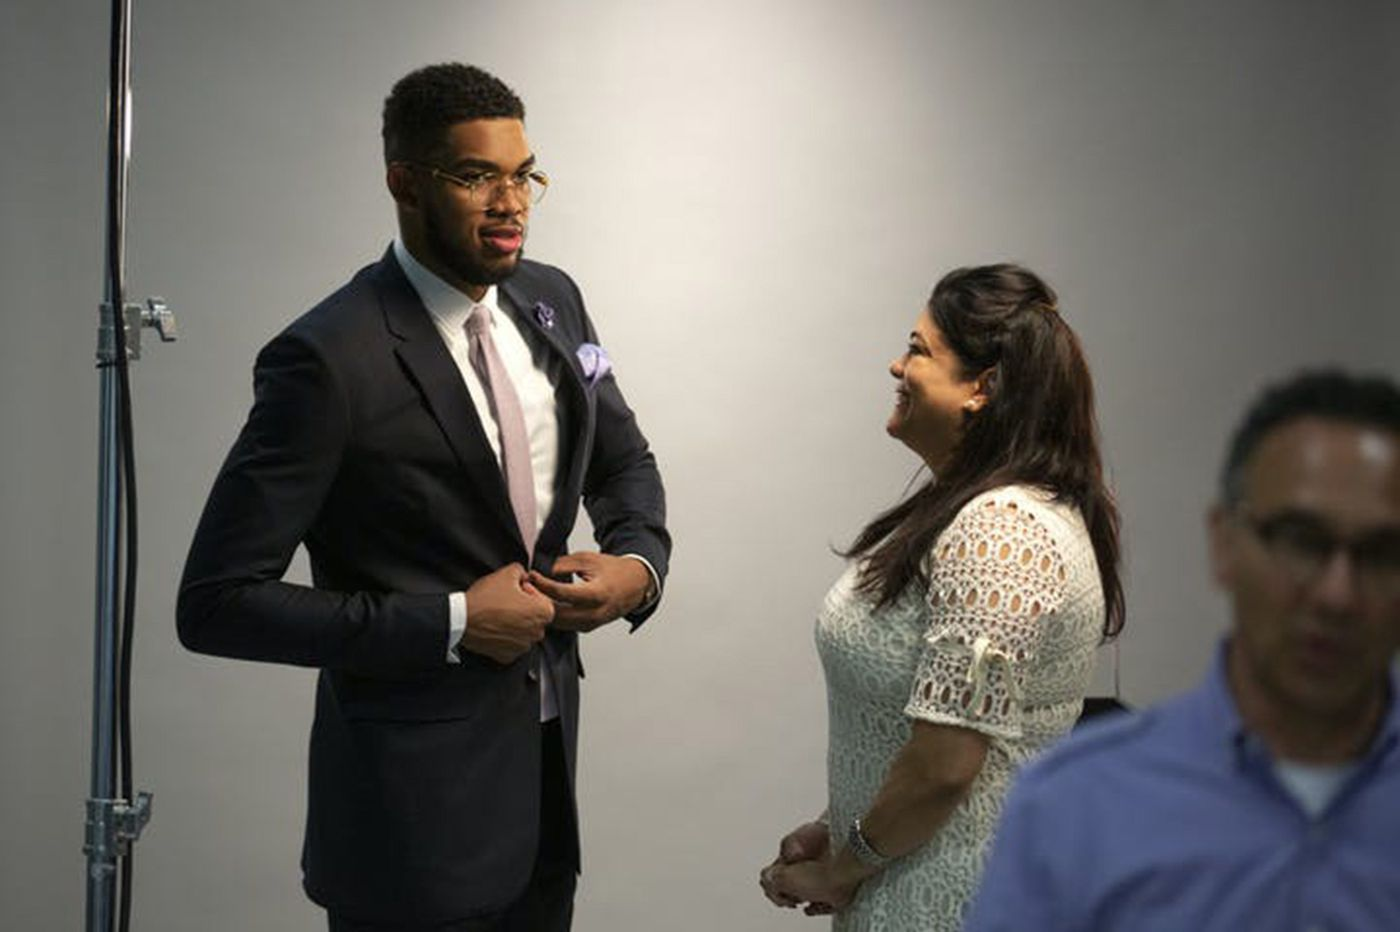 Karl-Anthony Towns opens up about losing mother, COVID-19 is tackling Packers' backfield, and more sports news